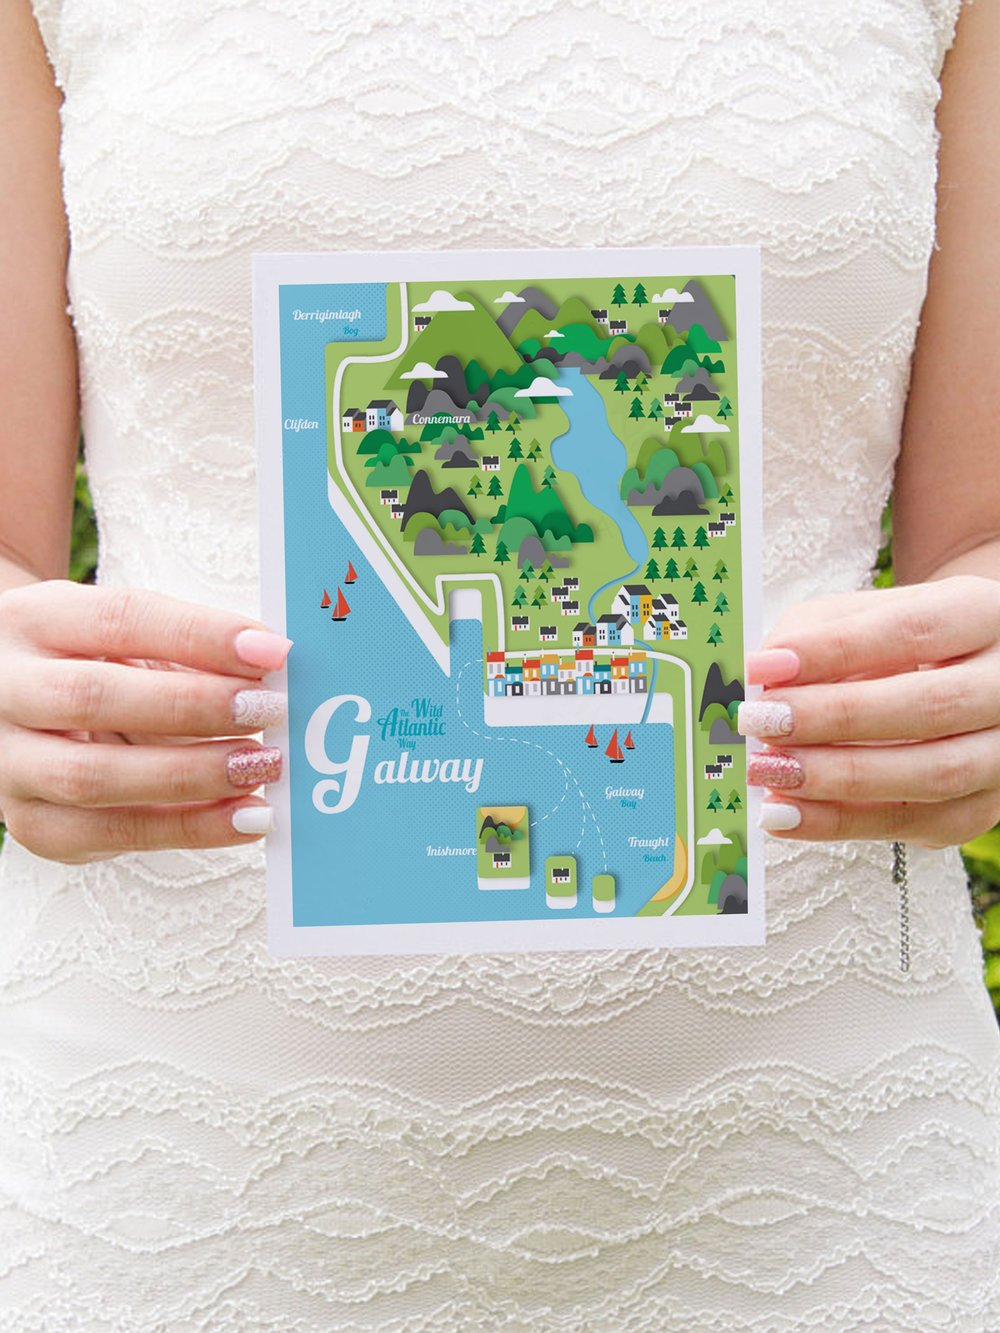 Galway map wedding invite.jpg